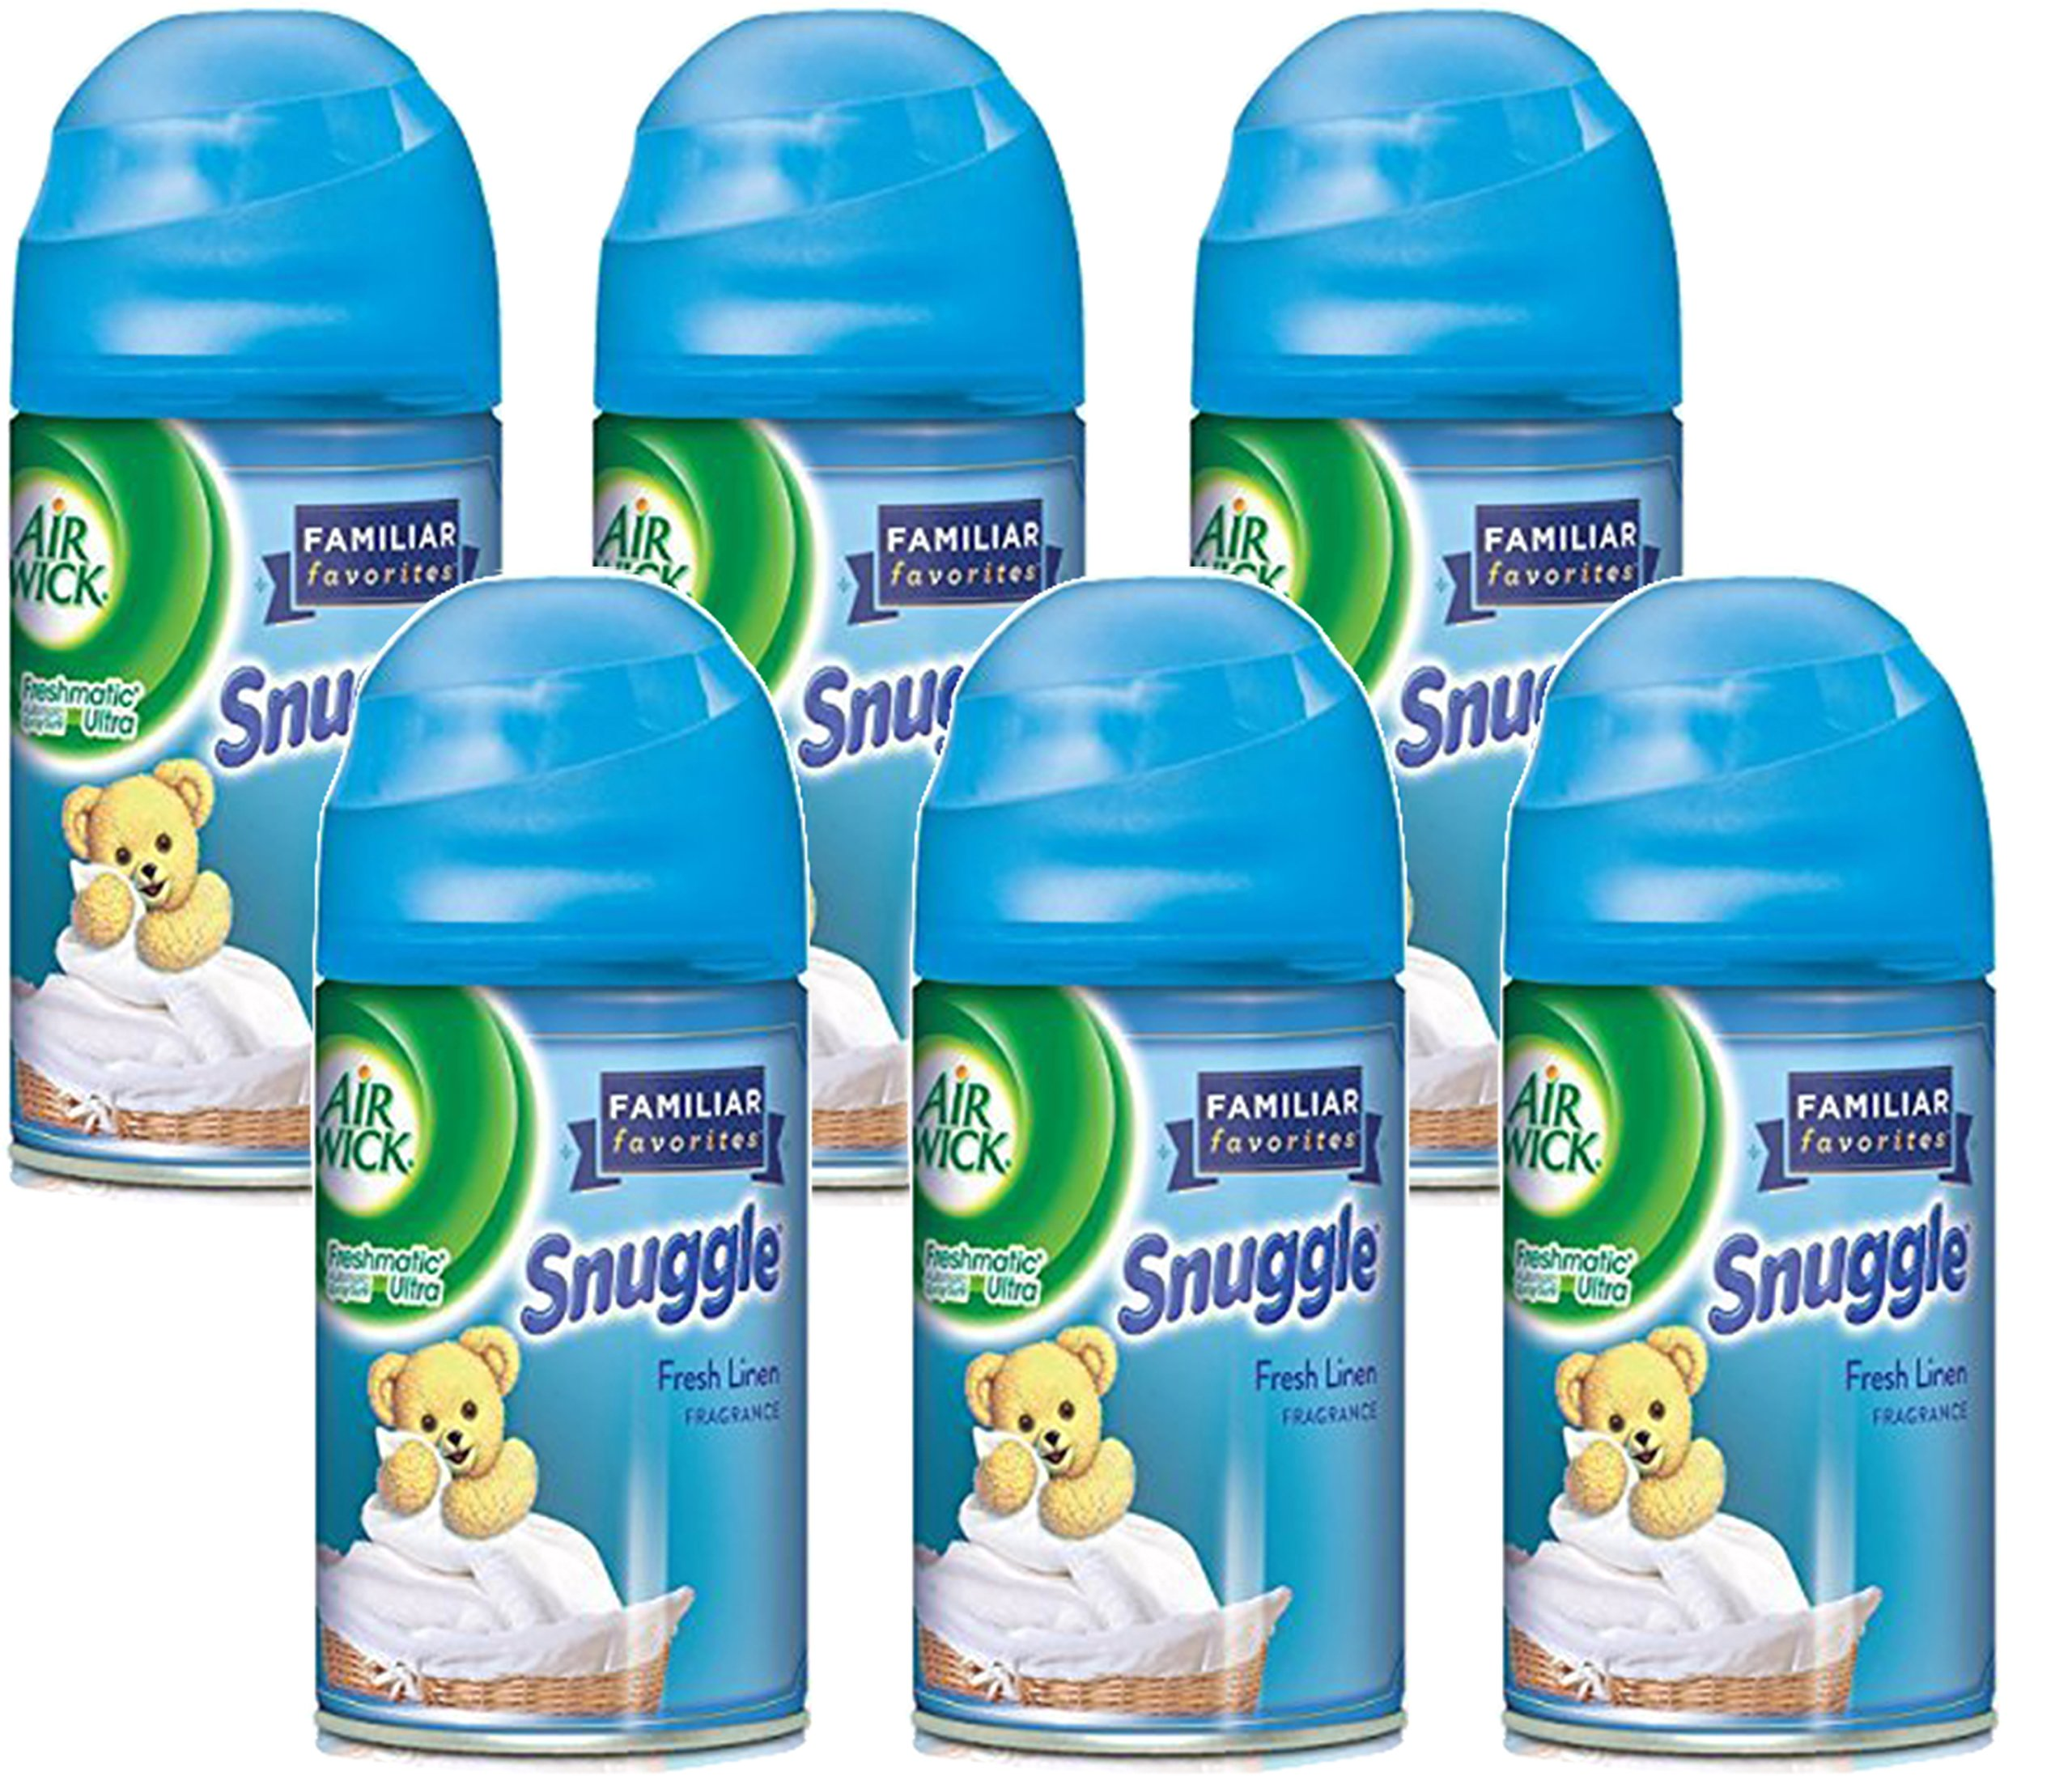 Airwick Freshmatic Refill, Snuggle Fresh Linen, 6.17 Ounce (Pack of 6) by Air Wick